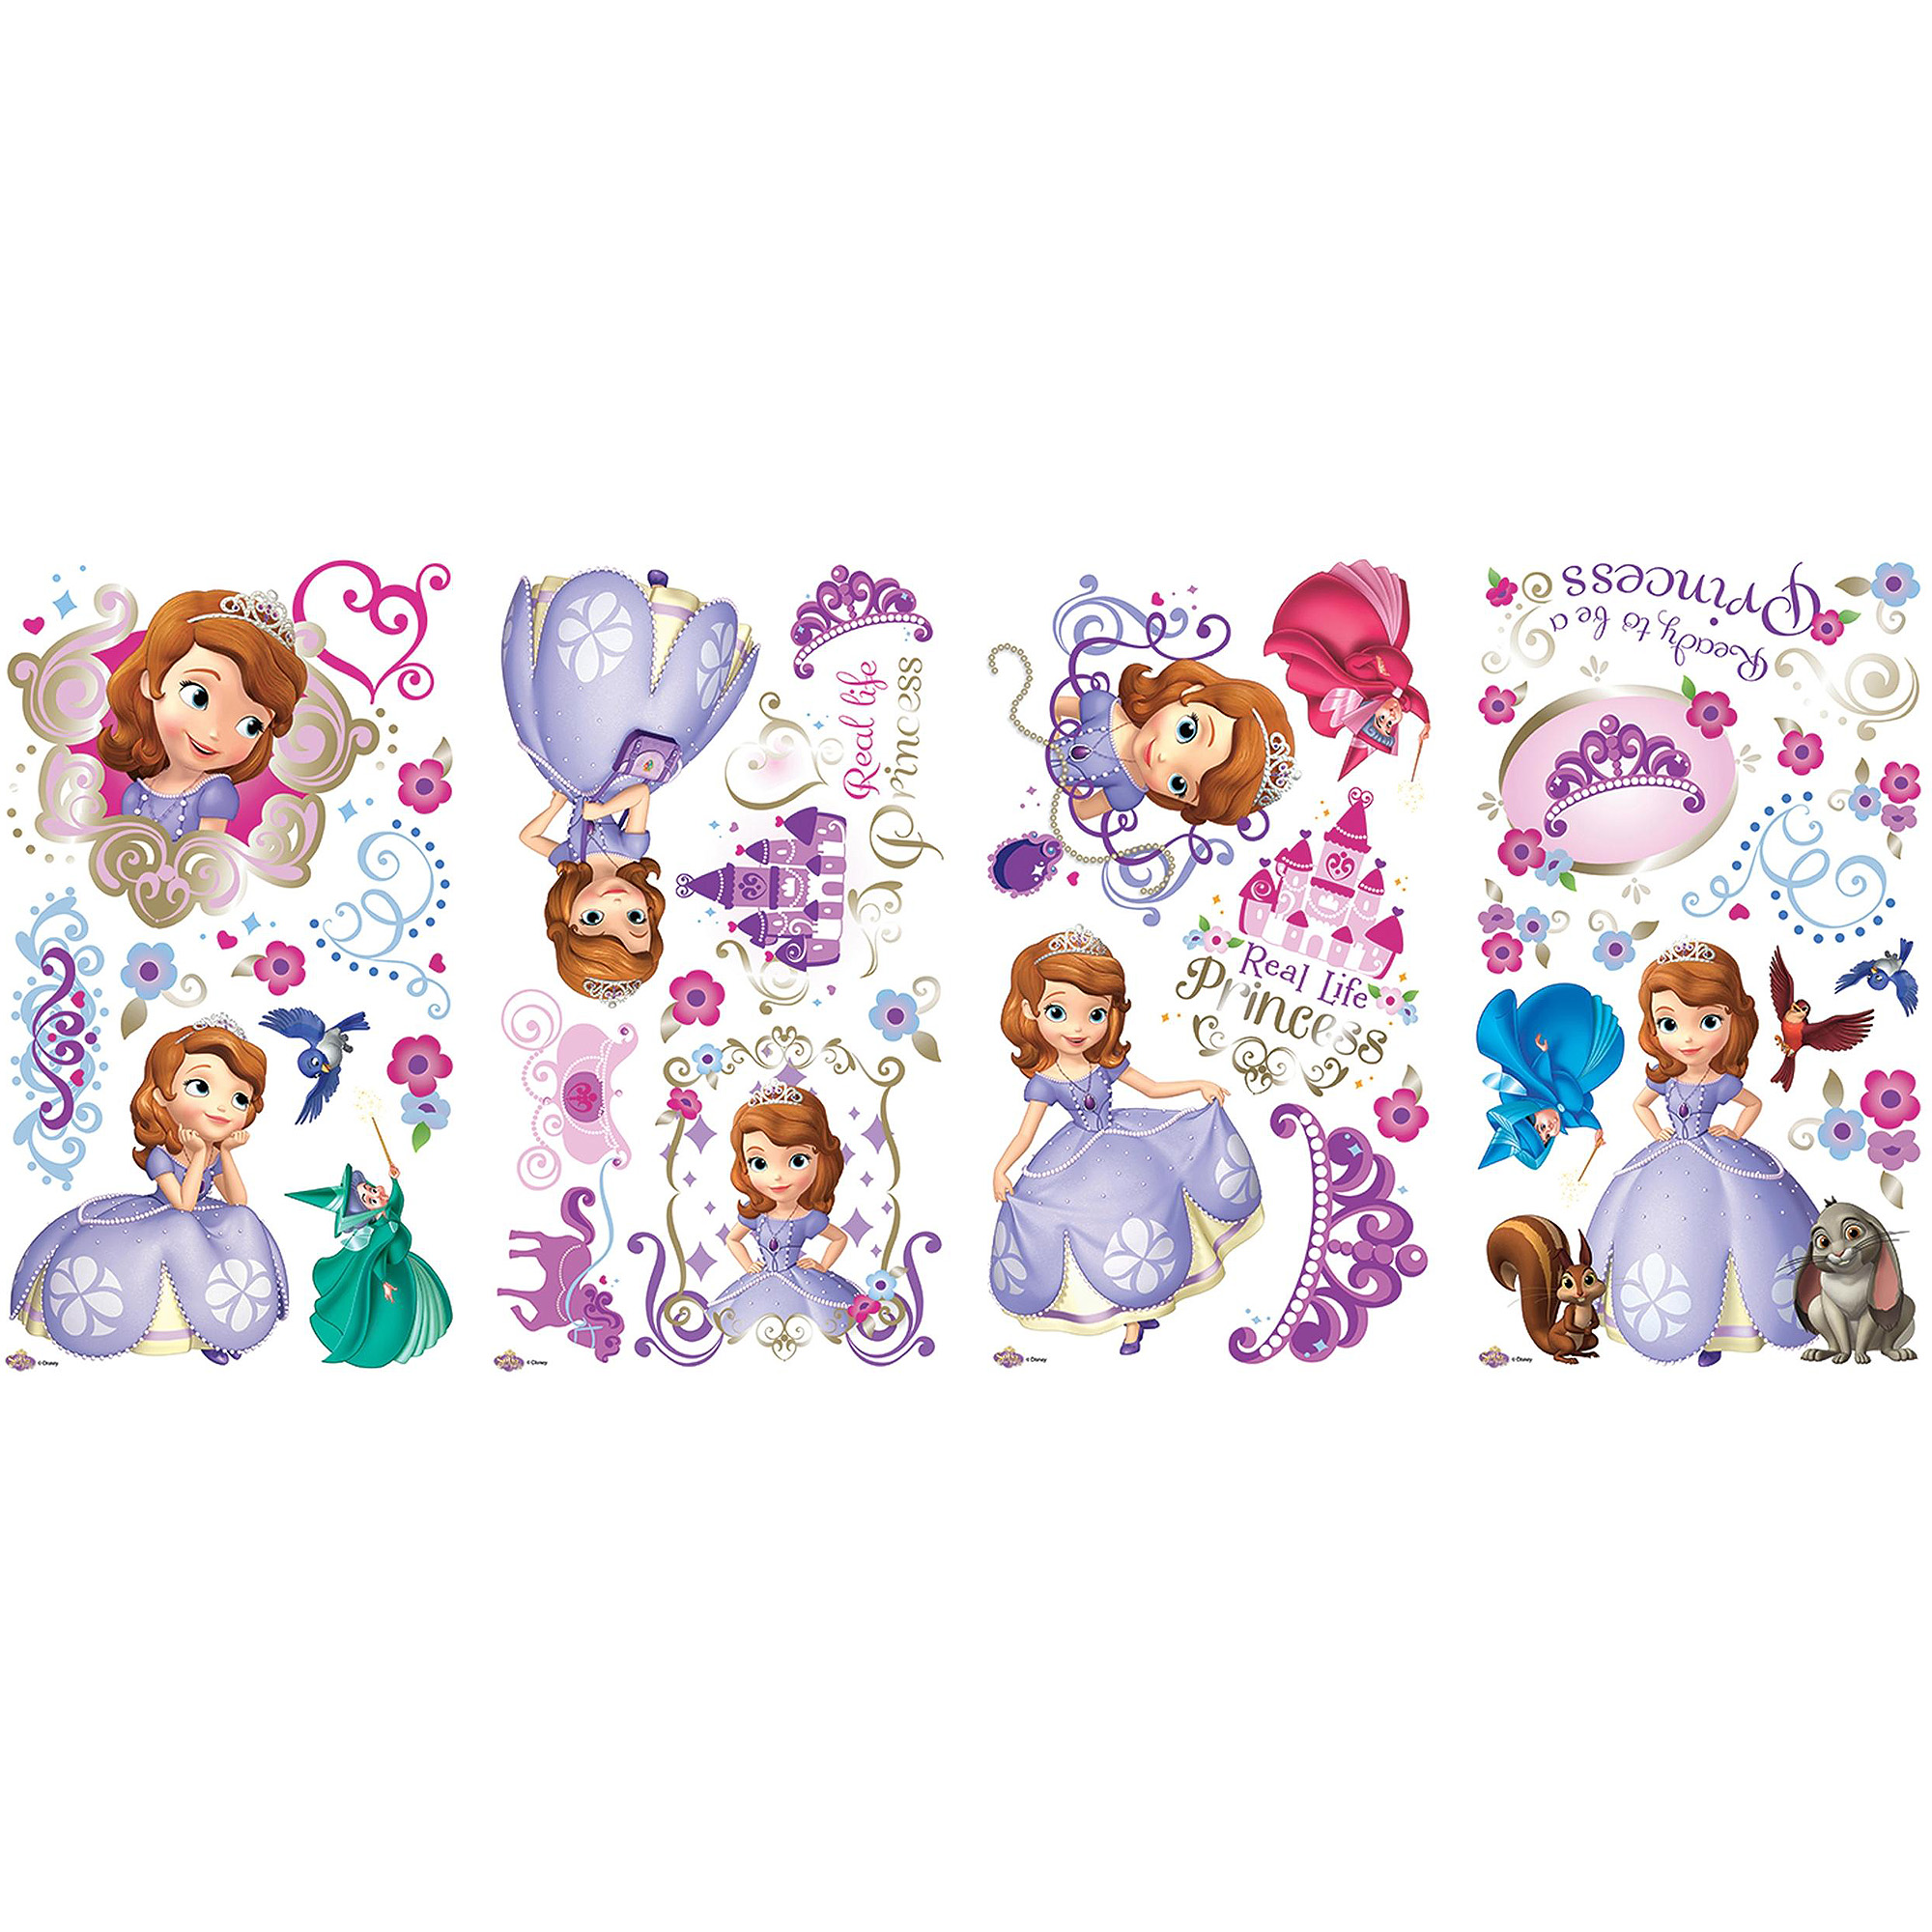 Sofia the First Peel-and-Stick Wall Decals